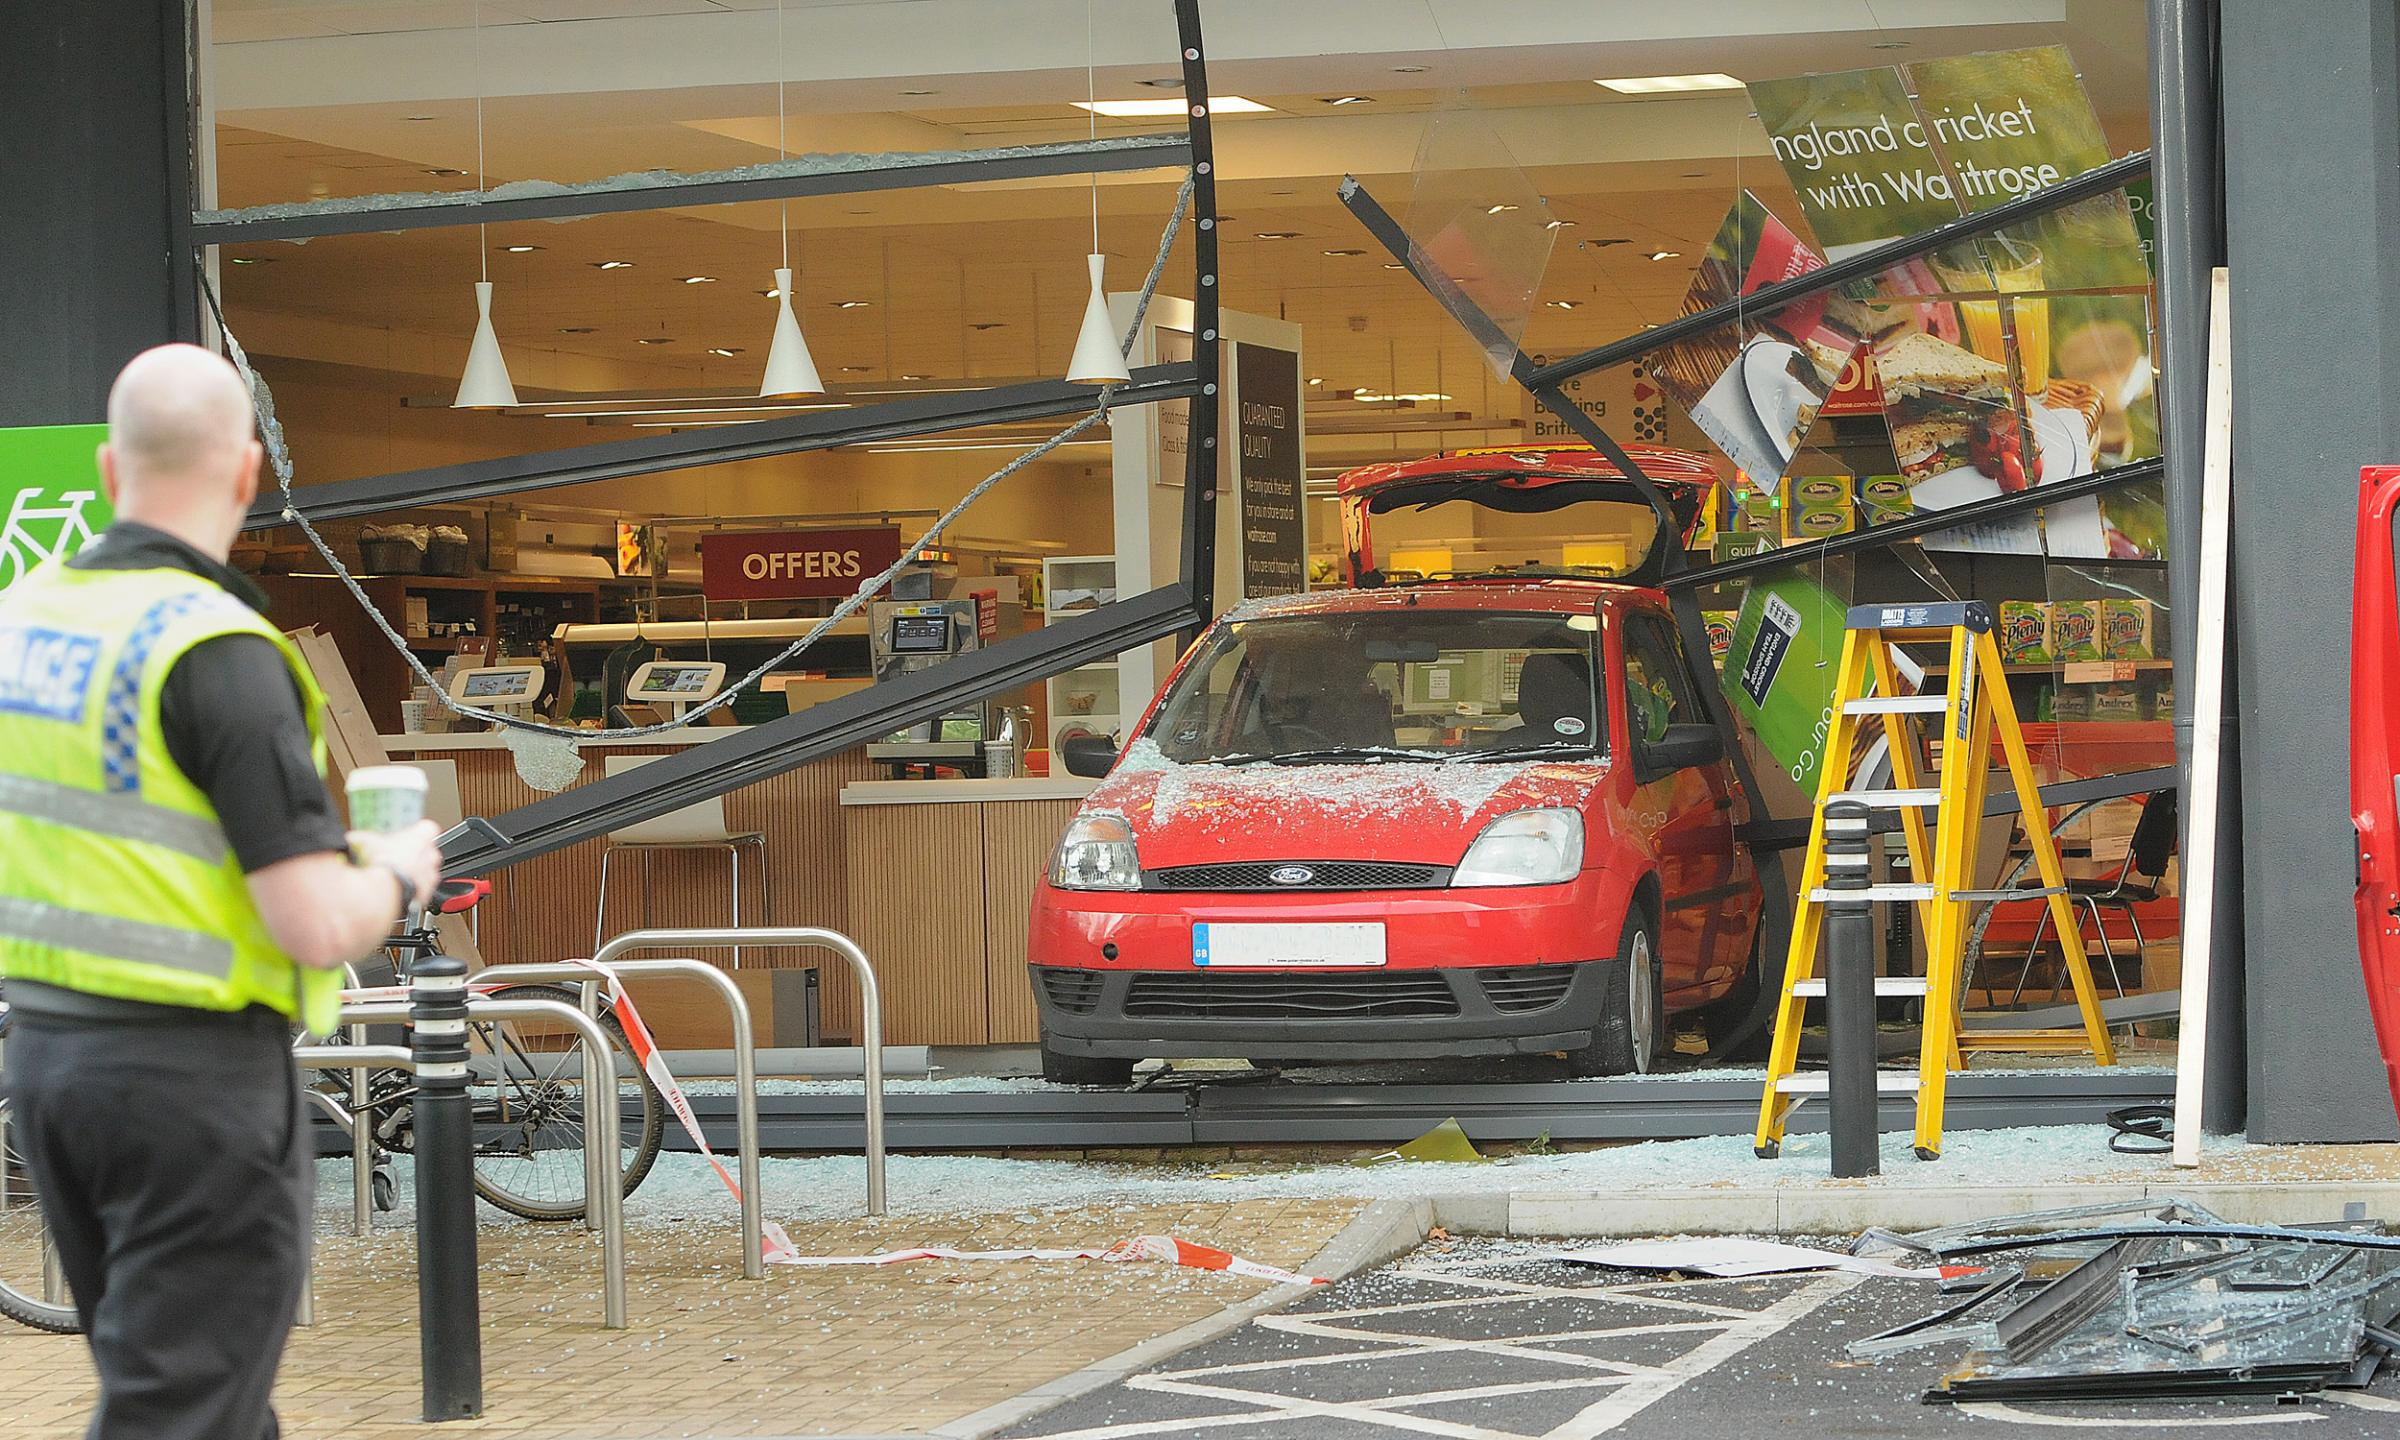 DAMAGE: The scene at Waitrose in Foss Islands Road last weekend where a woman accidently reversed her car through a window